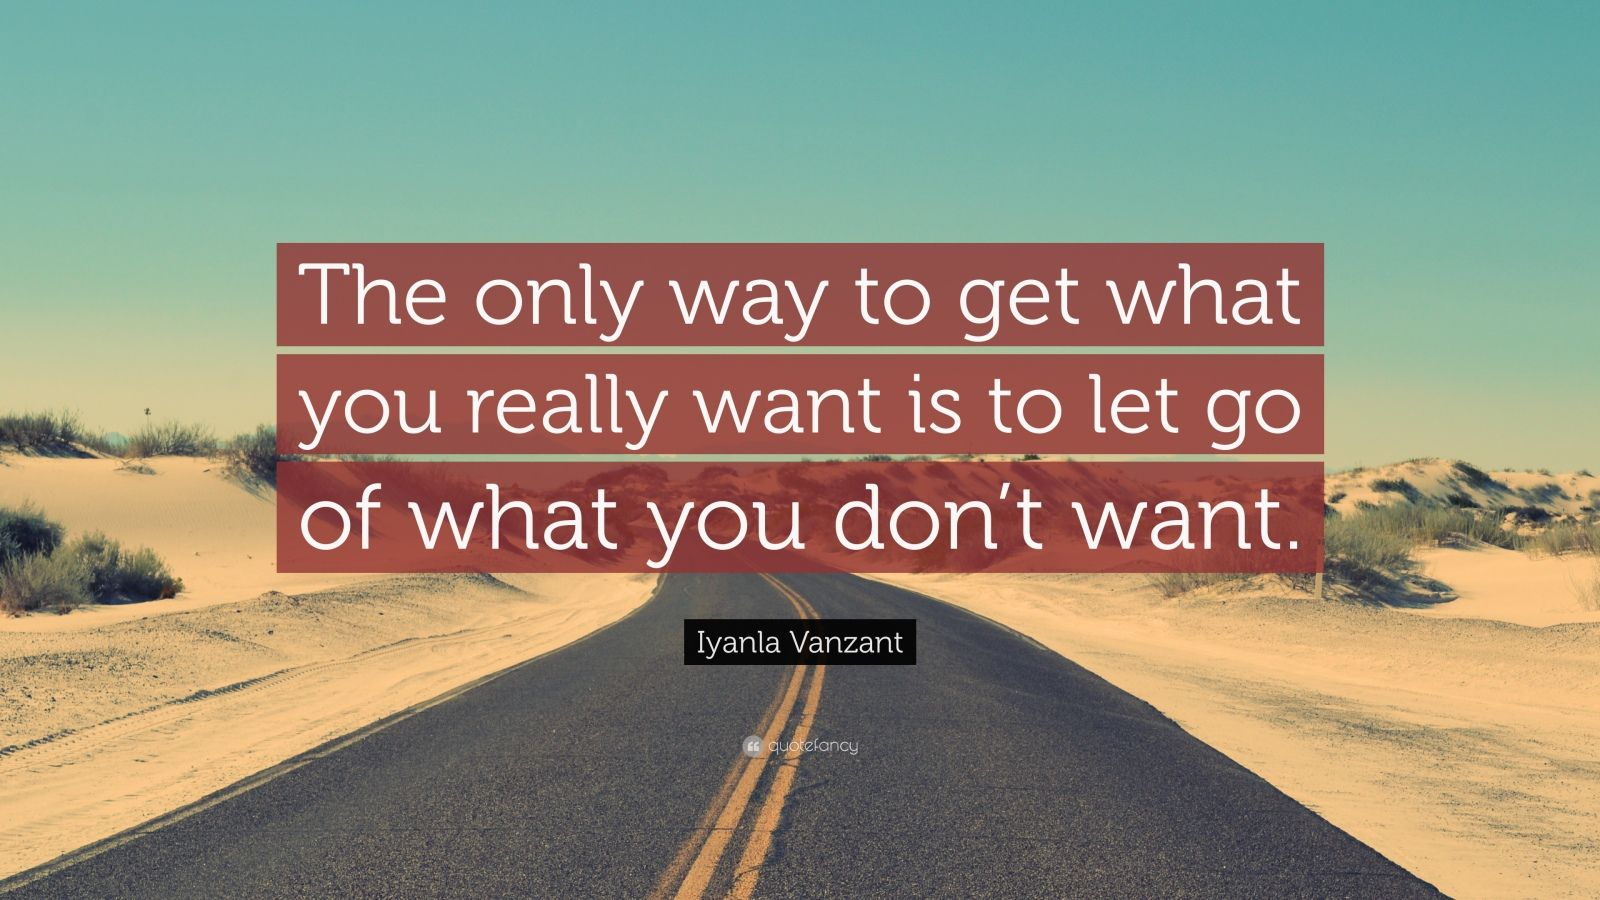 """Iyanla Vanzant Quote: """"The only way to get what you really want is to let go of what you don't want."""""""